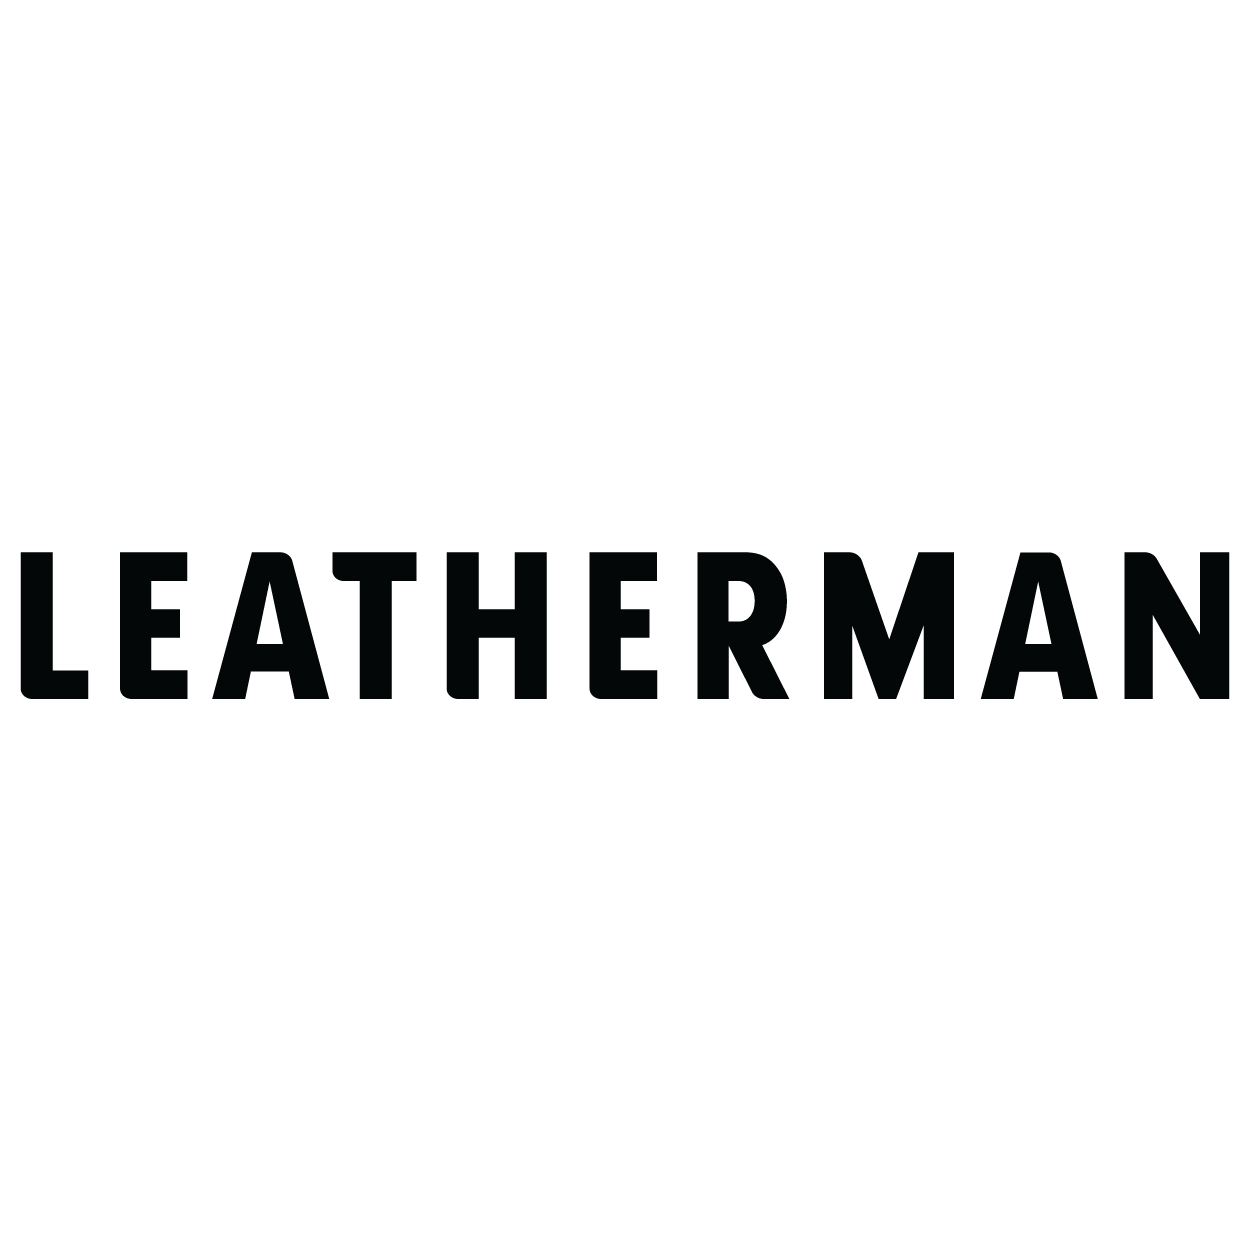 Leatherman Logo - Popular Brand Promotional Products